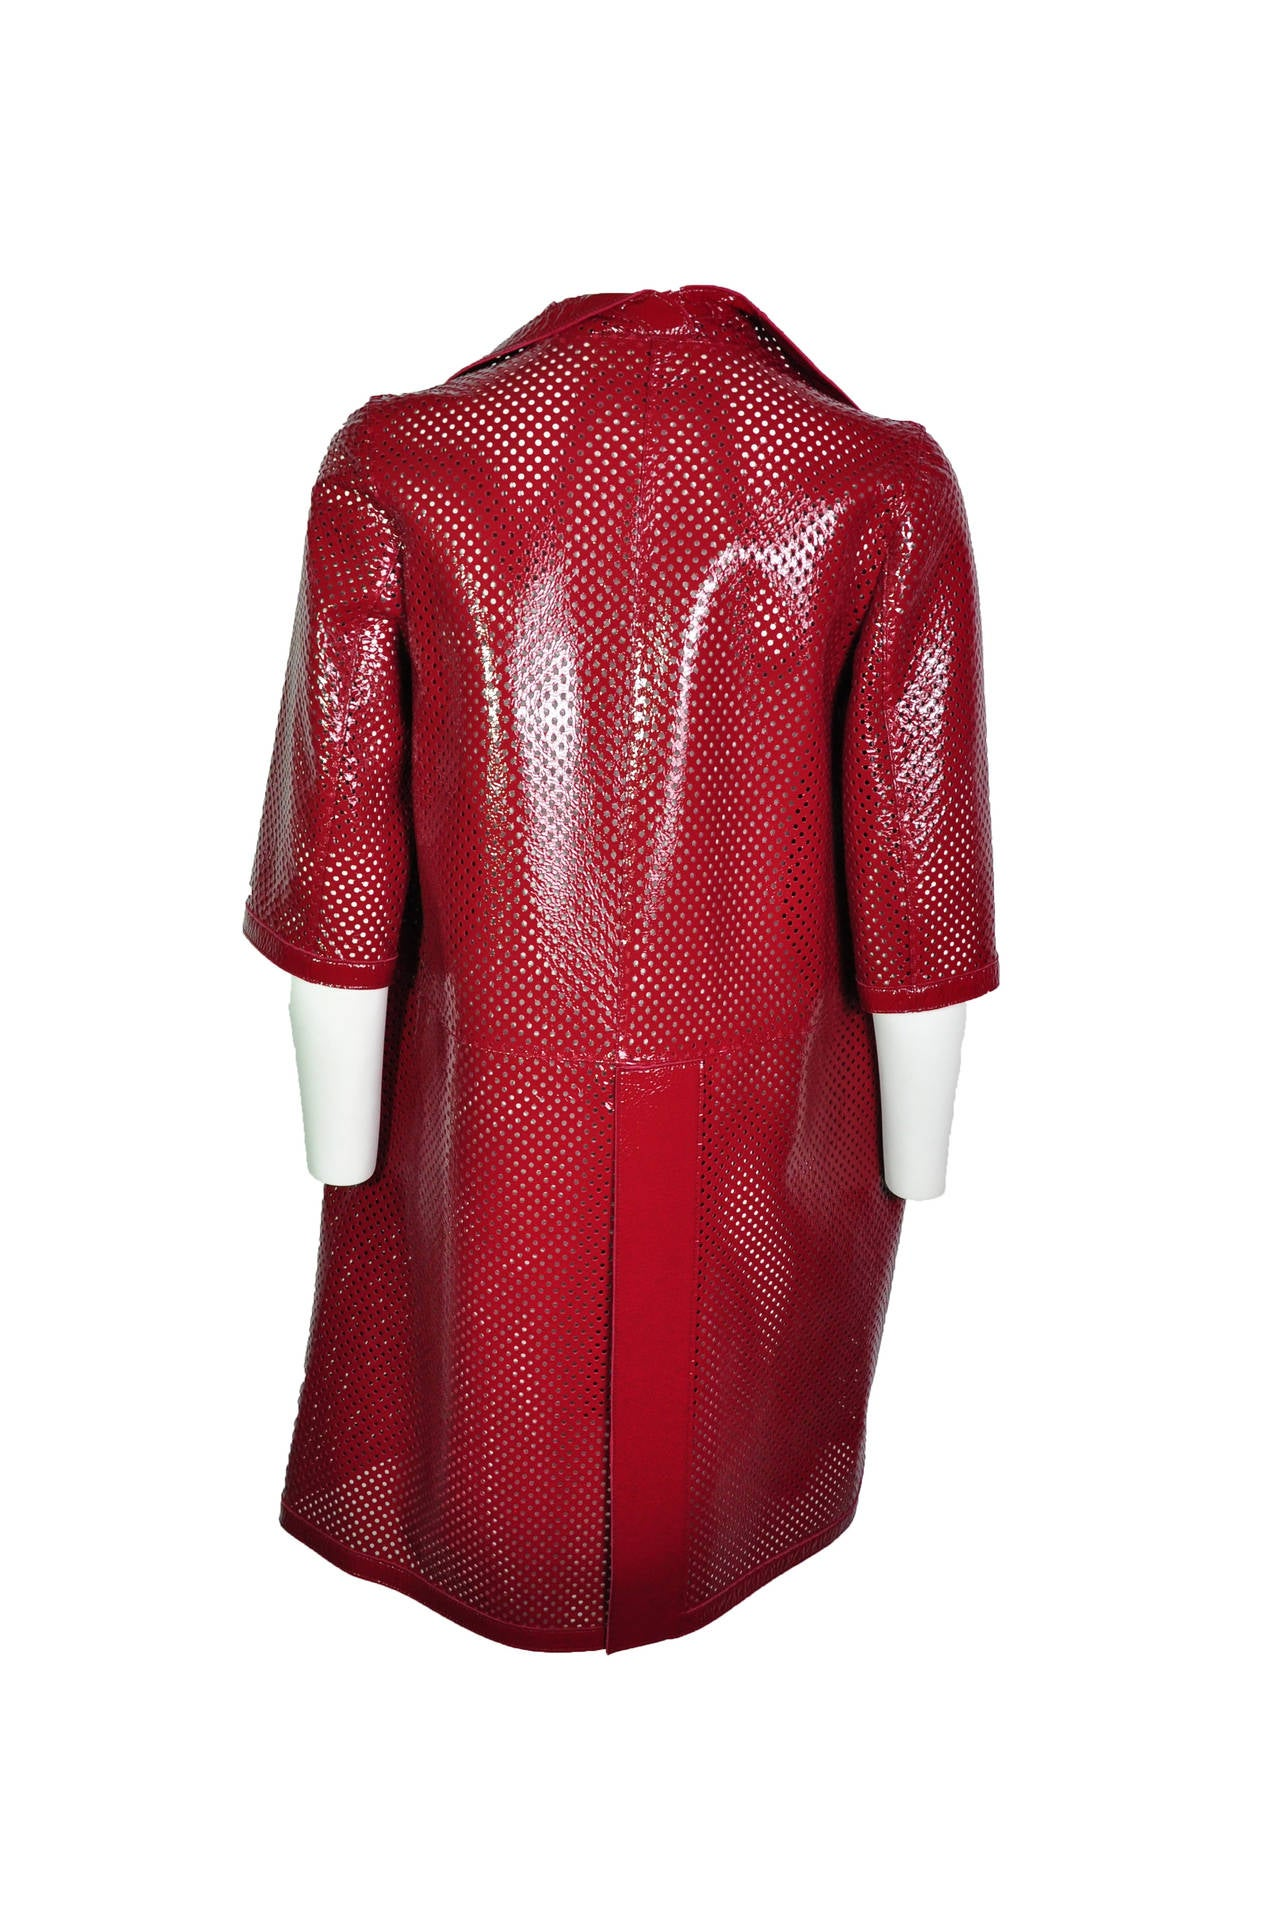 A chili red Marni short sleeves dust coat in perforated patent leather. Two seam side pockets.